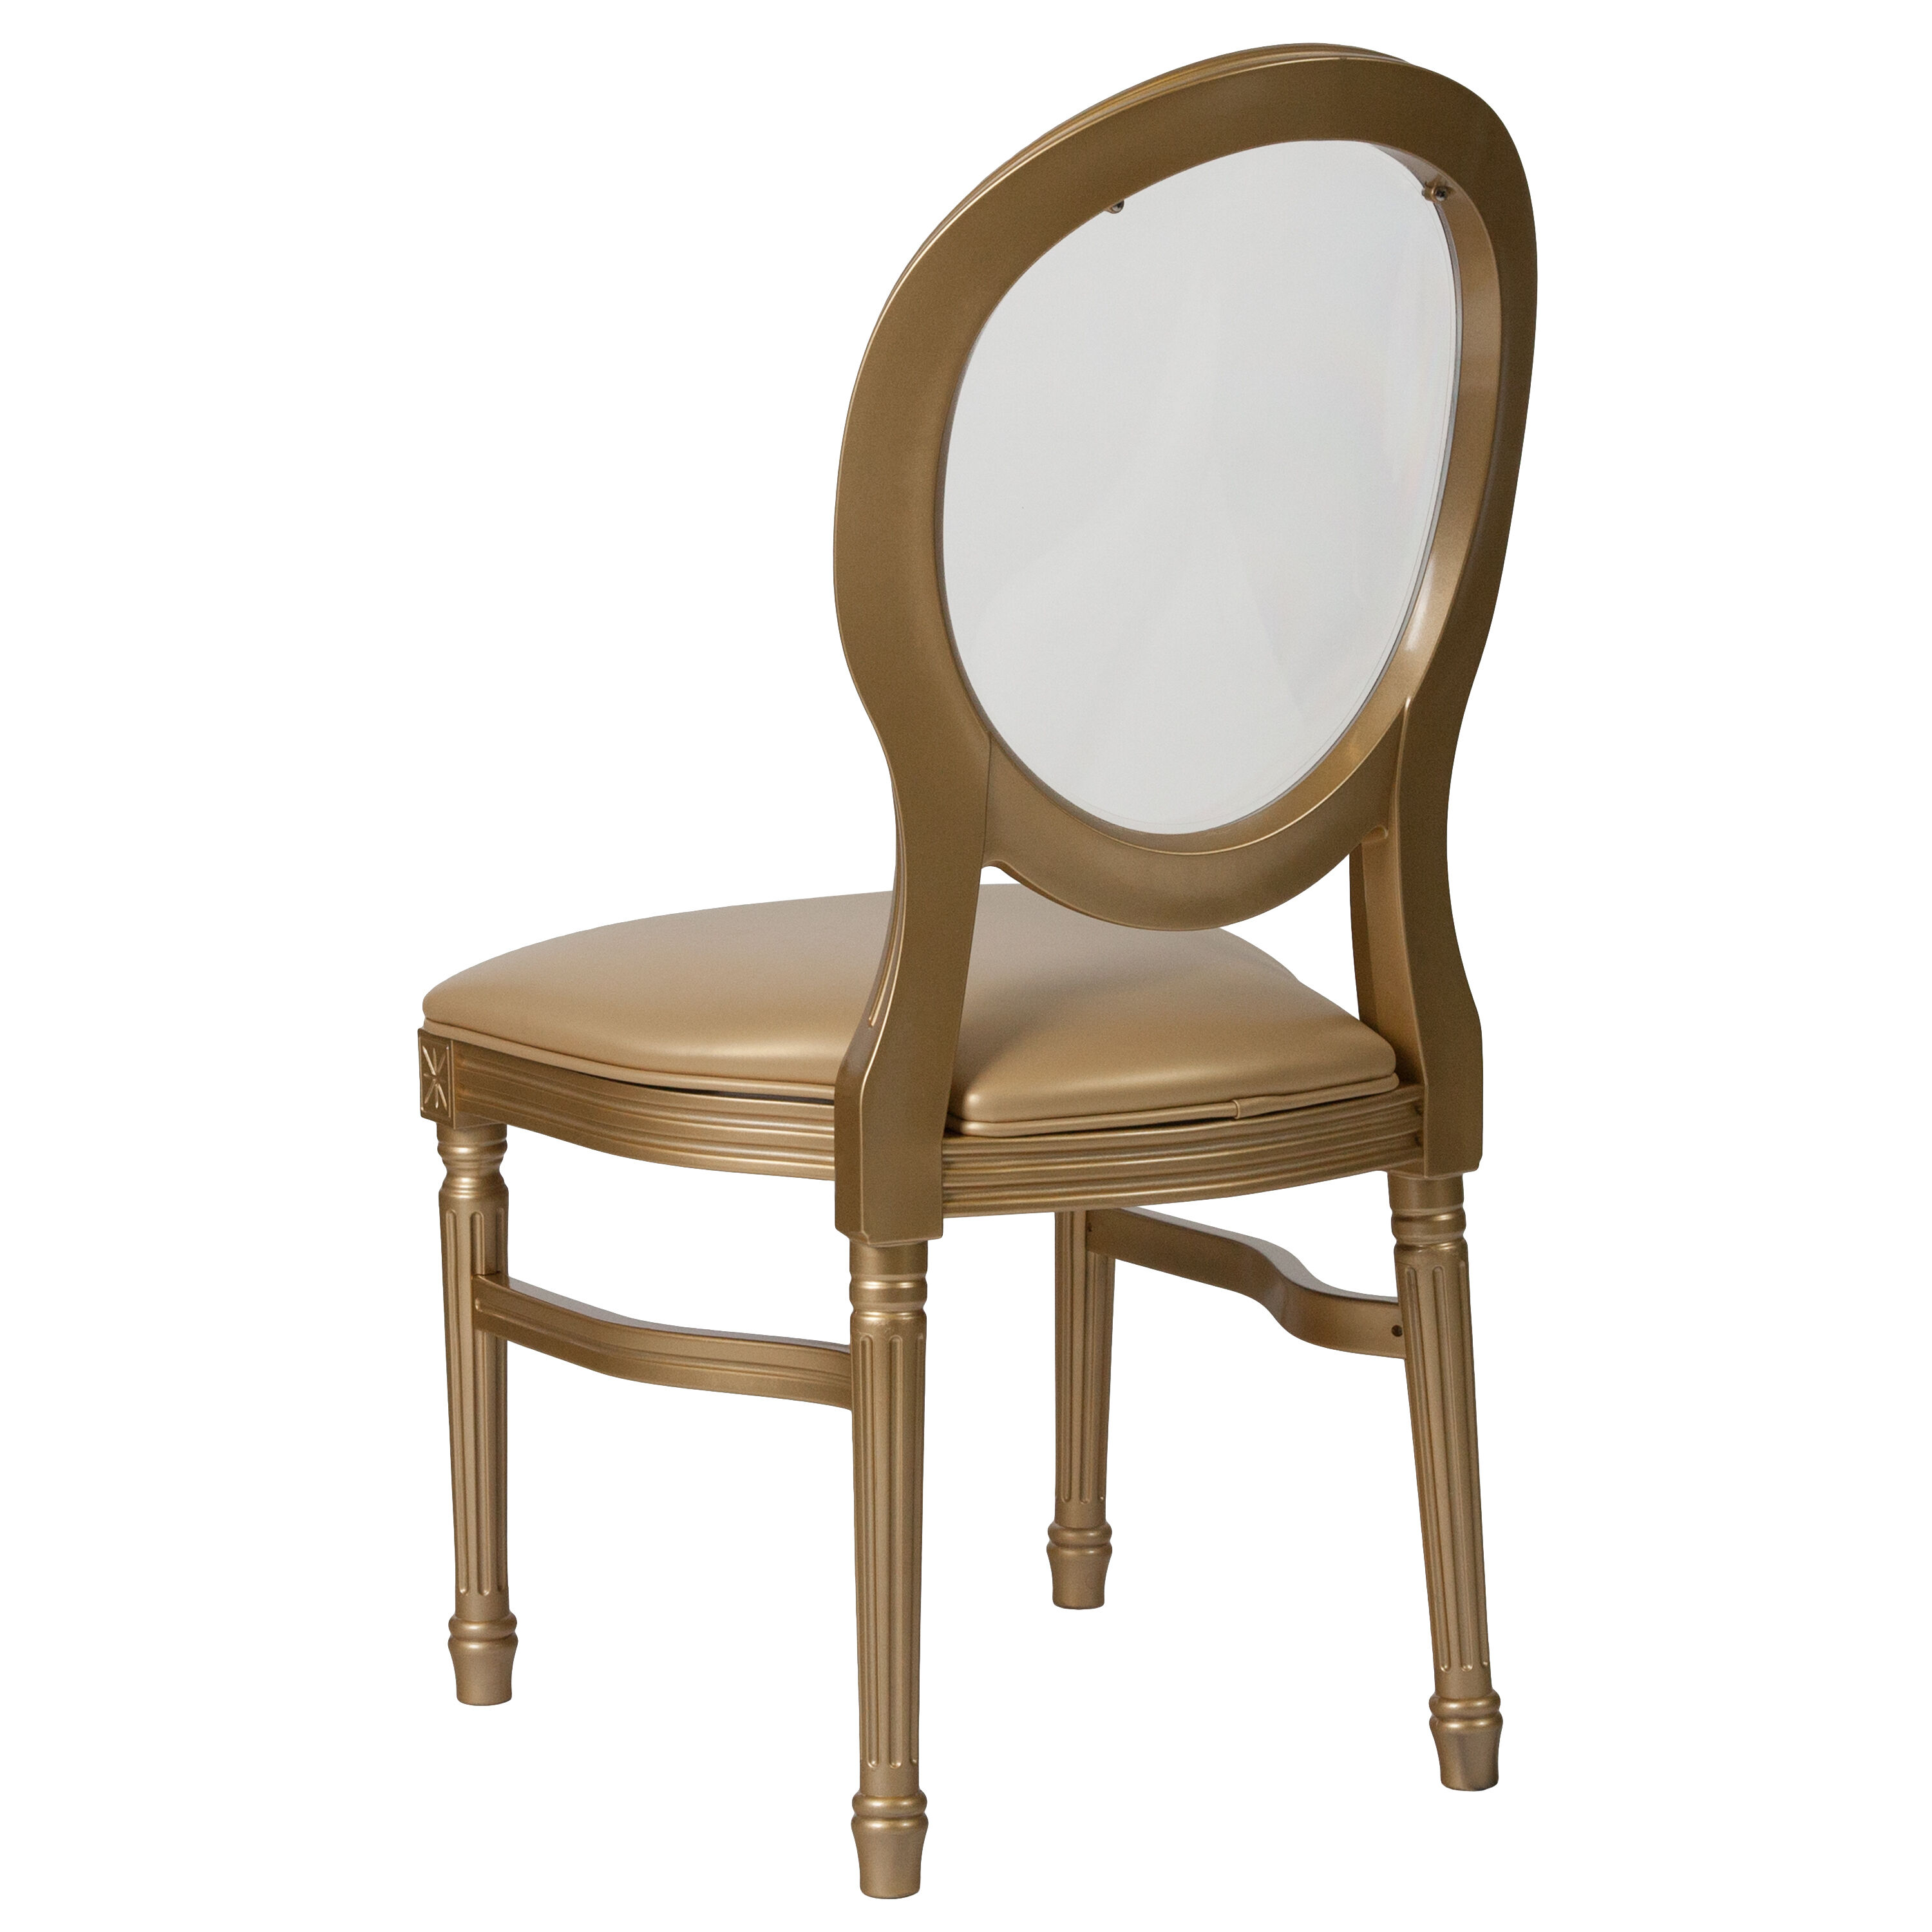 Etonnant Capacity King Louis Chair With Transparent Back, Gold Vinyl ...